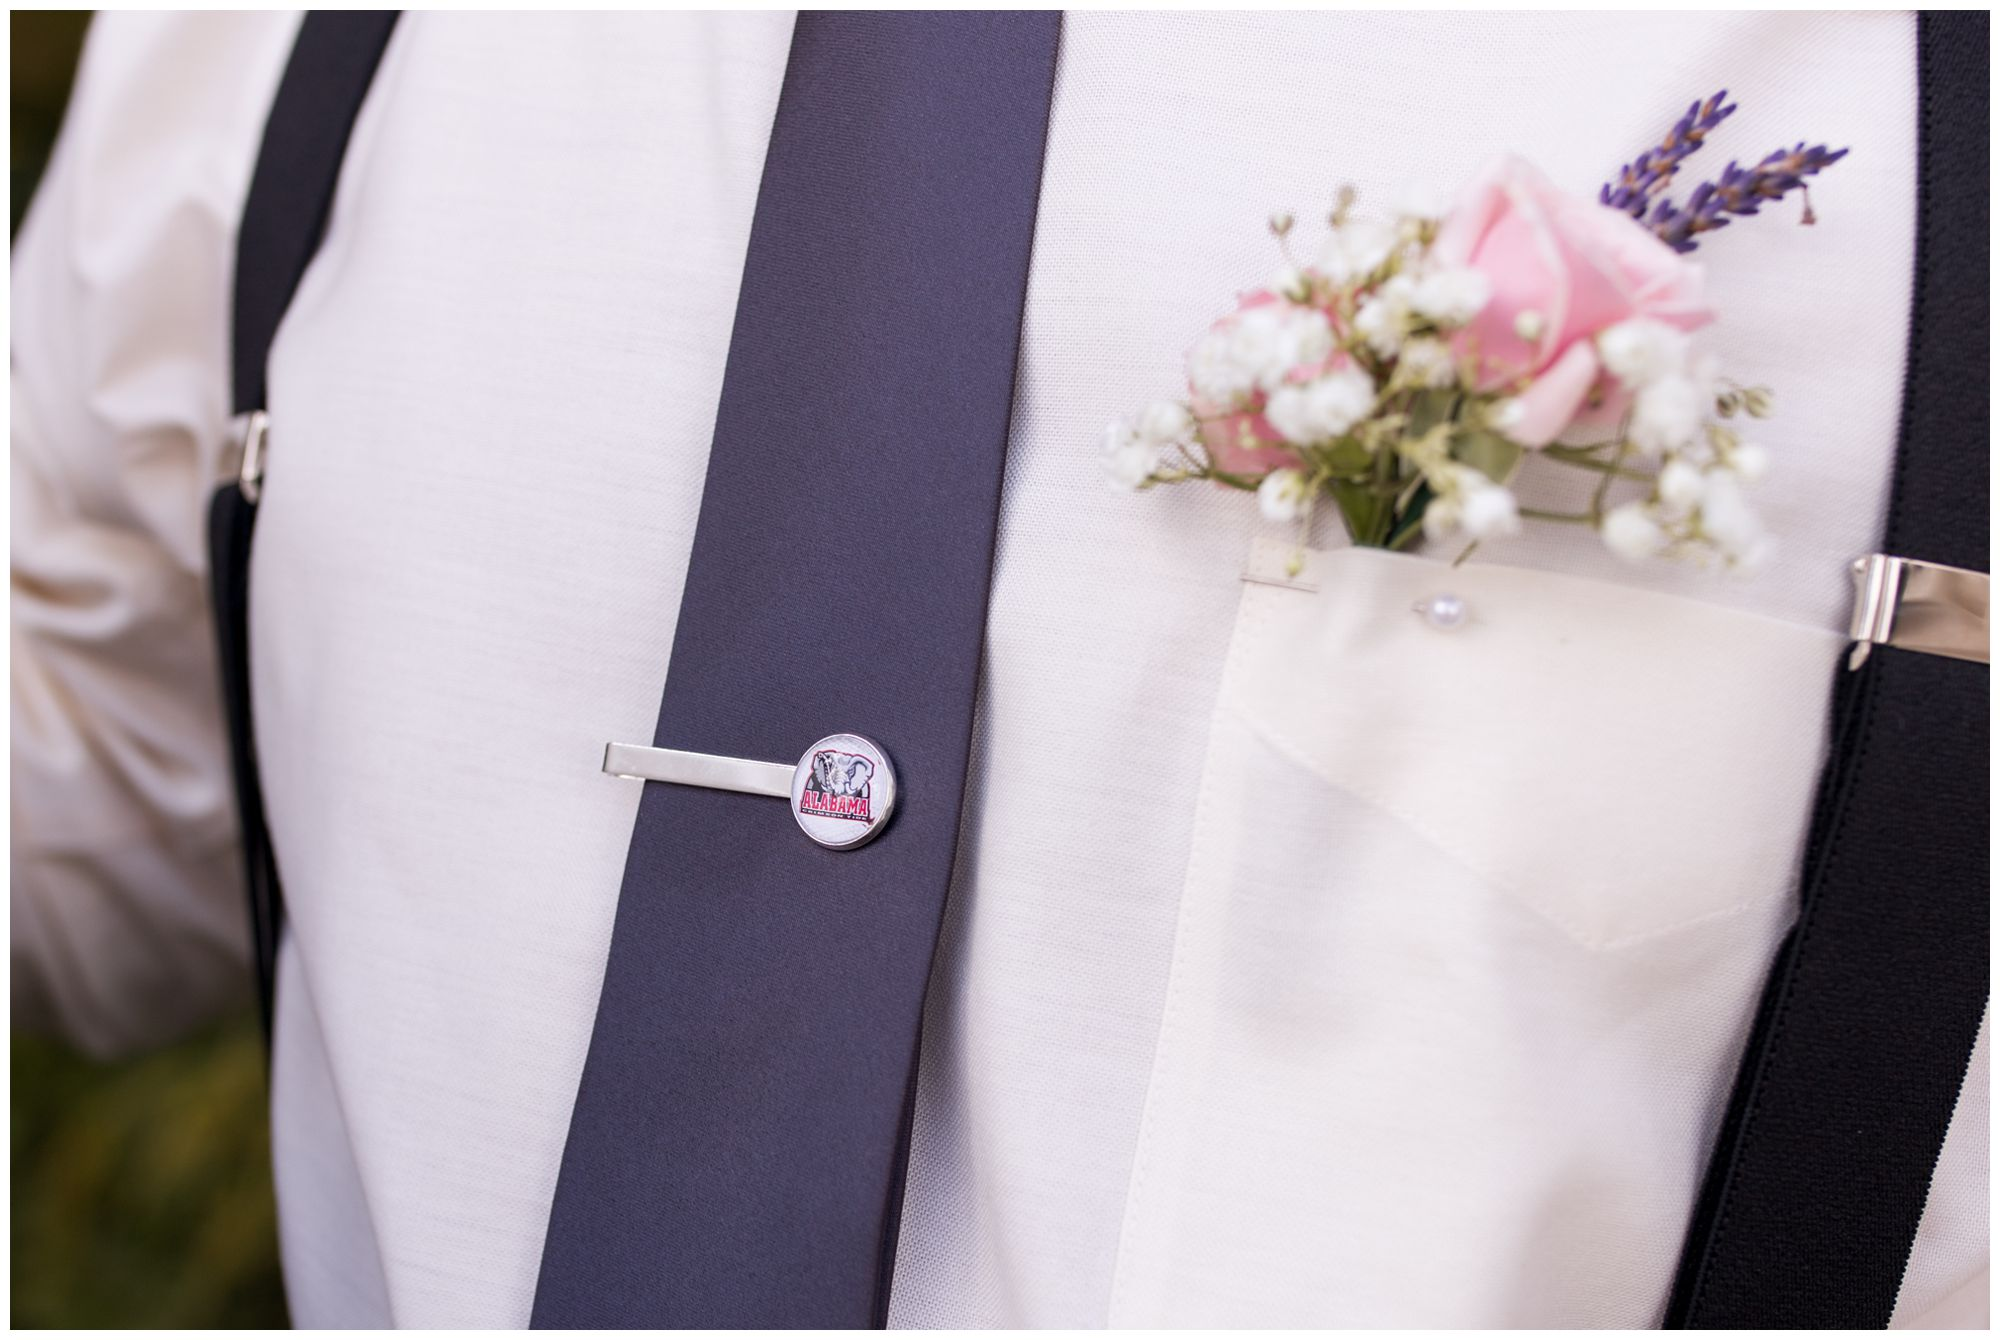 close up of groomsman's Alabama tie clip and boutonniere